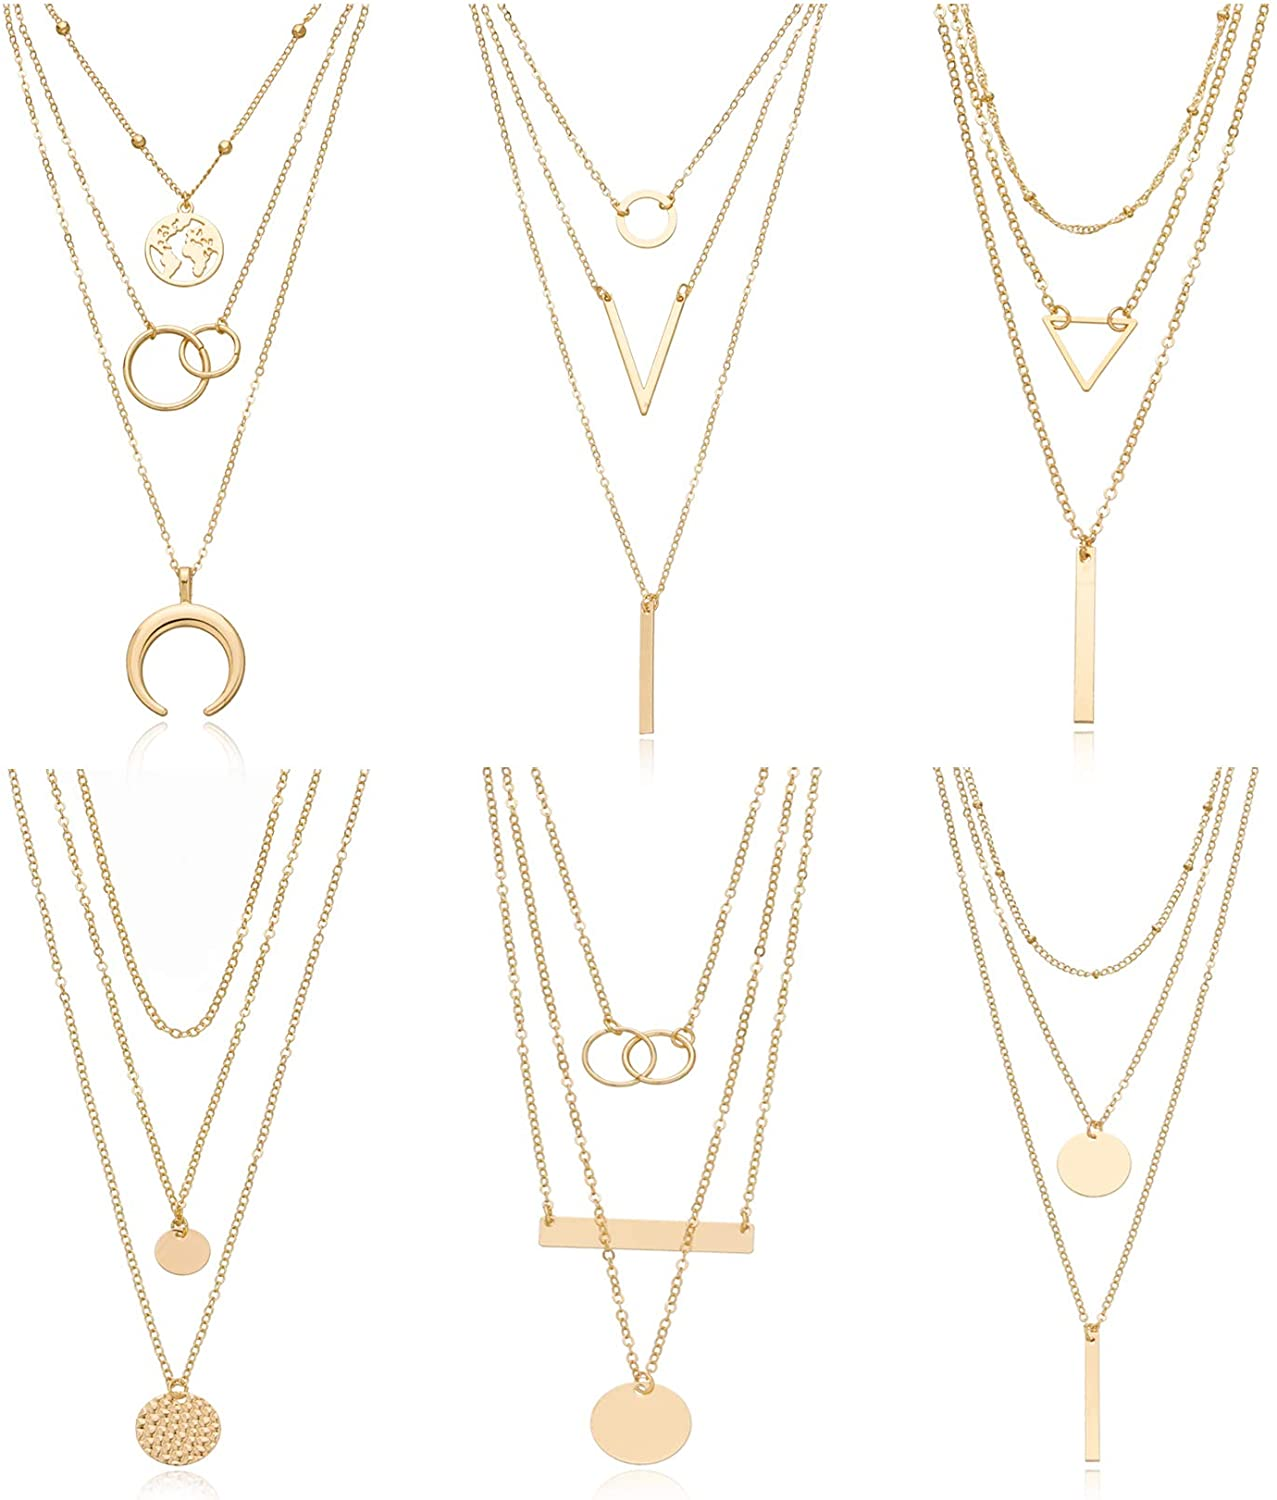 Biokia 6 Pieces Layered Necklaces for Women Long Necklaces Gold Choker Necklaces Map Coin Bar Crescent Moon Necklace Layered Y Pendant Necklace Multilayer